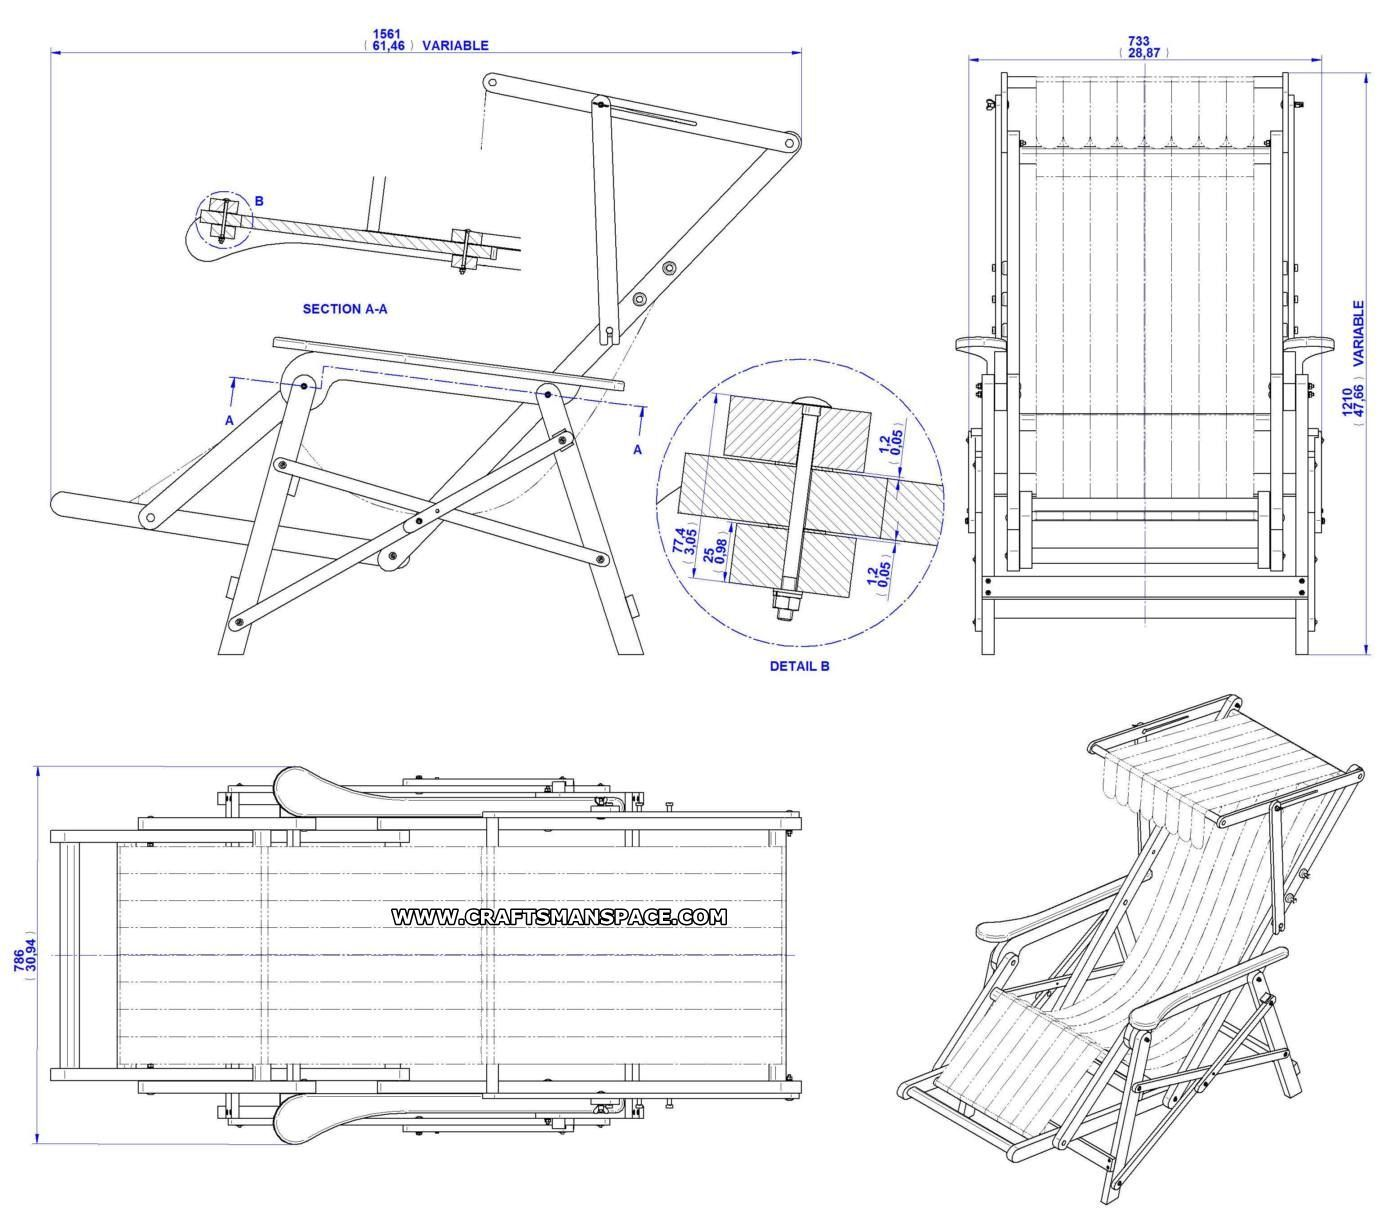 Beach lounge chair drawing - Beach Chair Plan Assembly Drawing